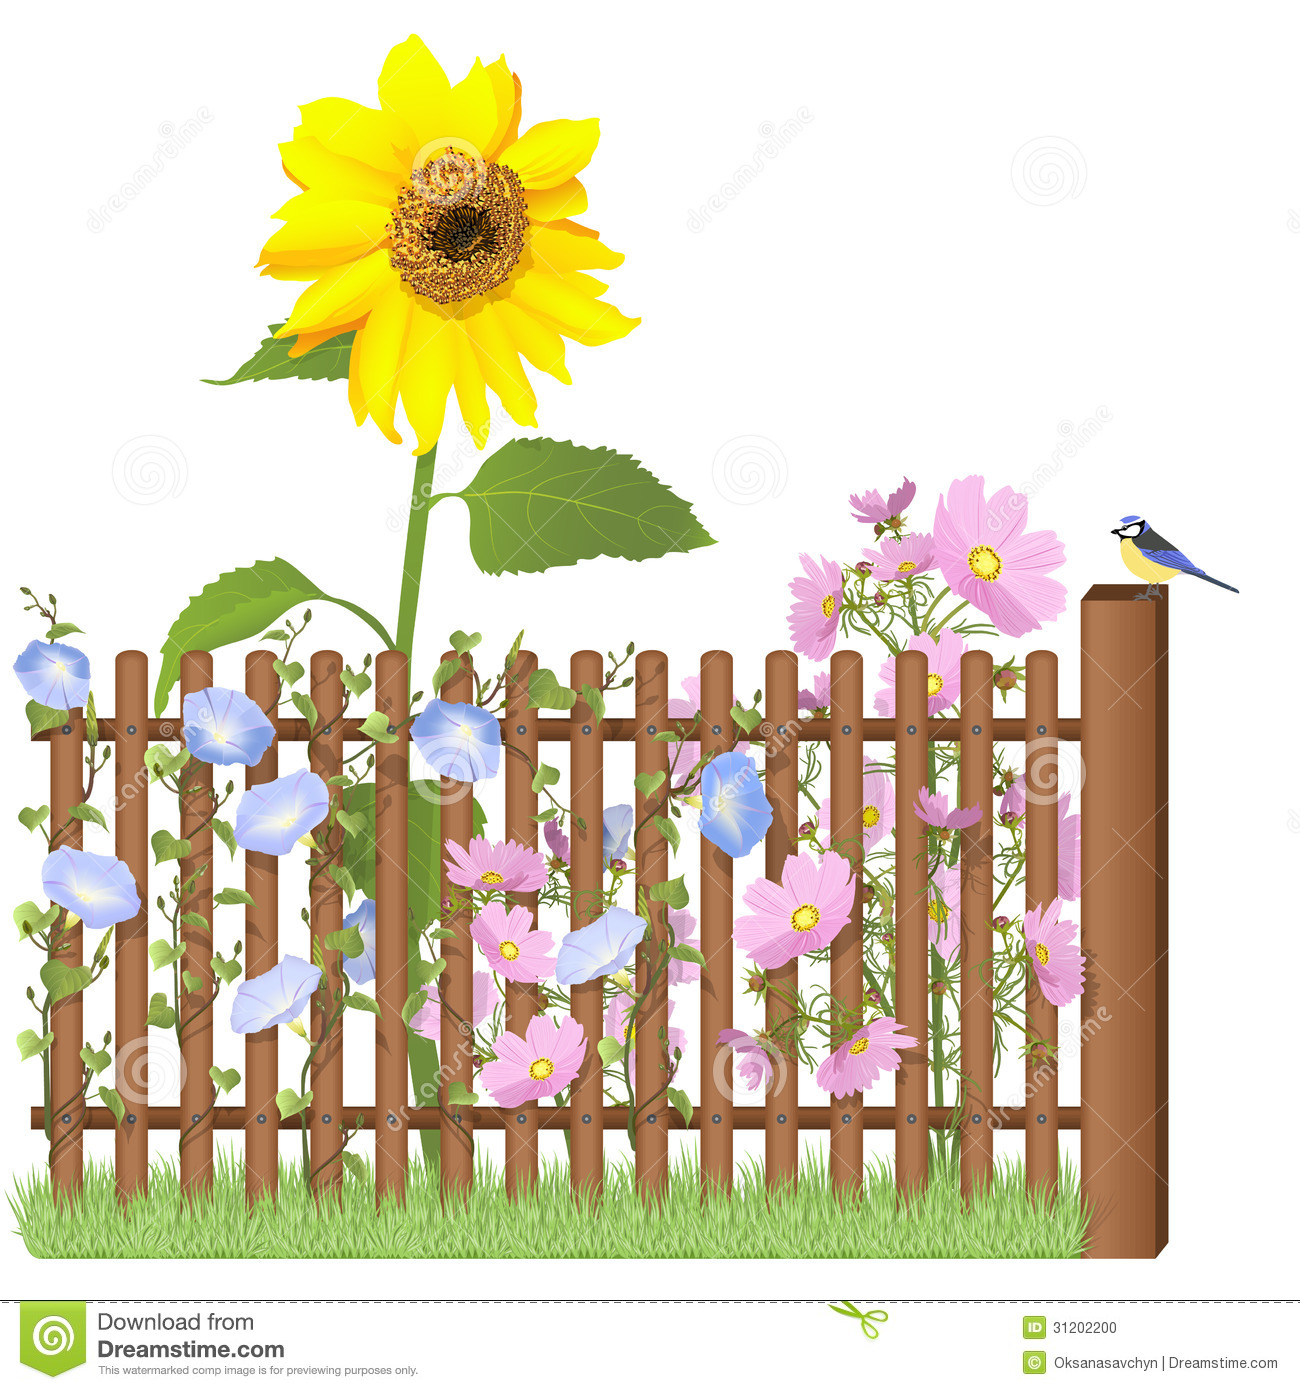 cerca jardim madeira:Wooden Fence and Flowers